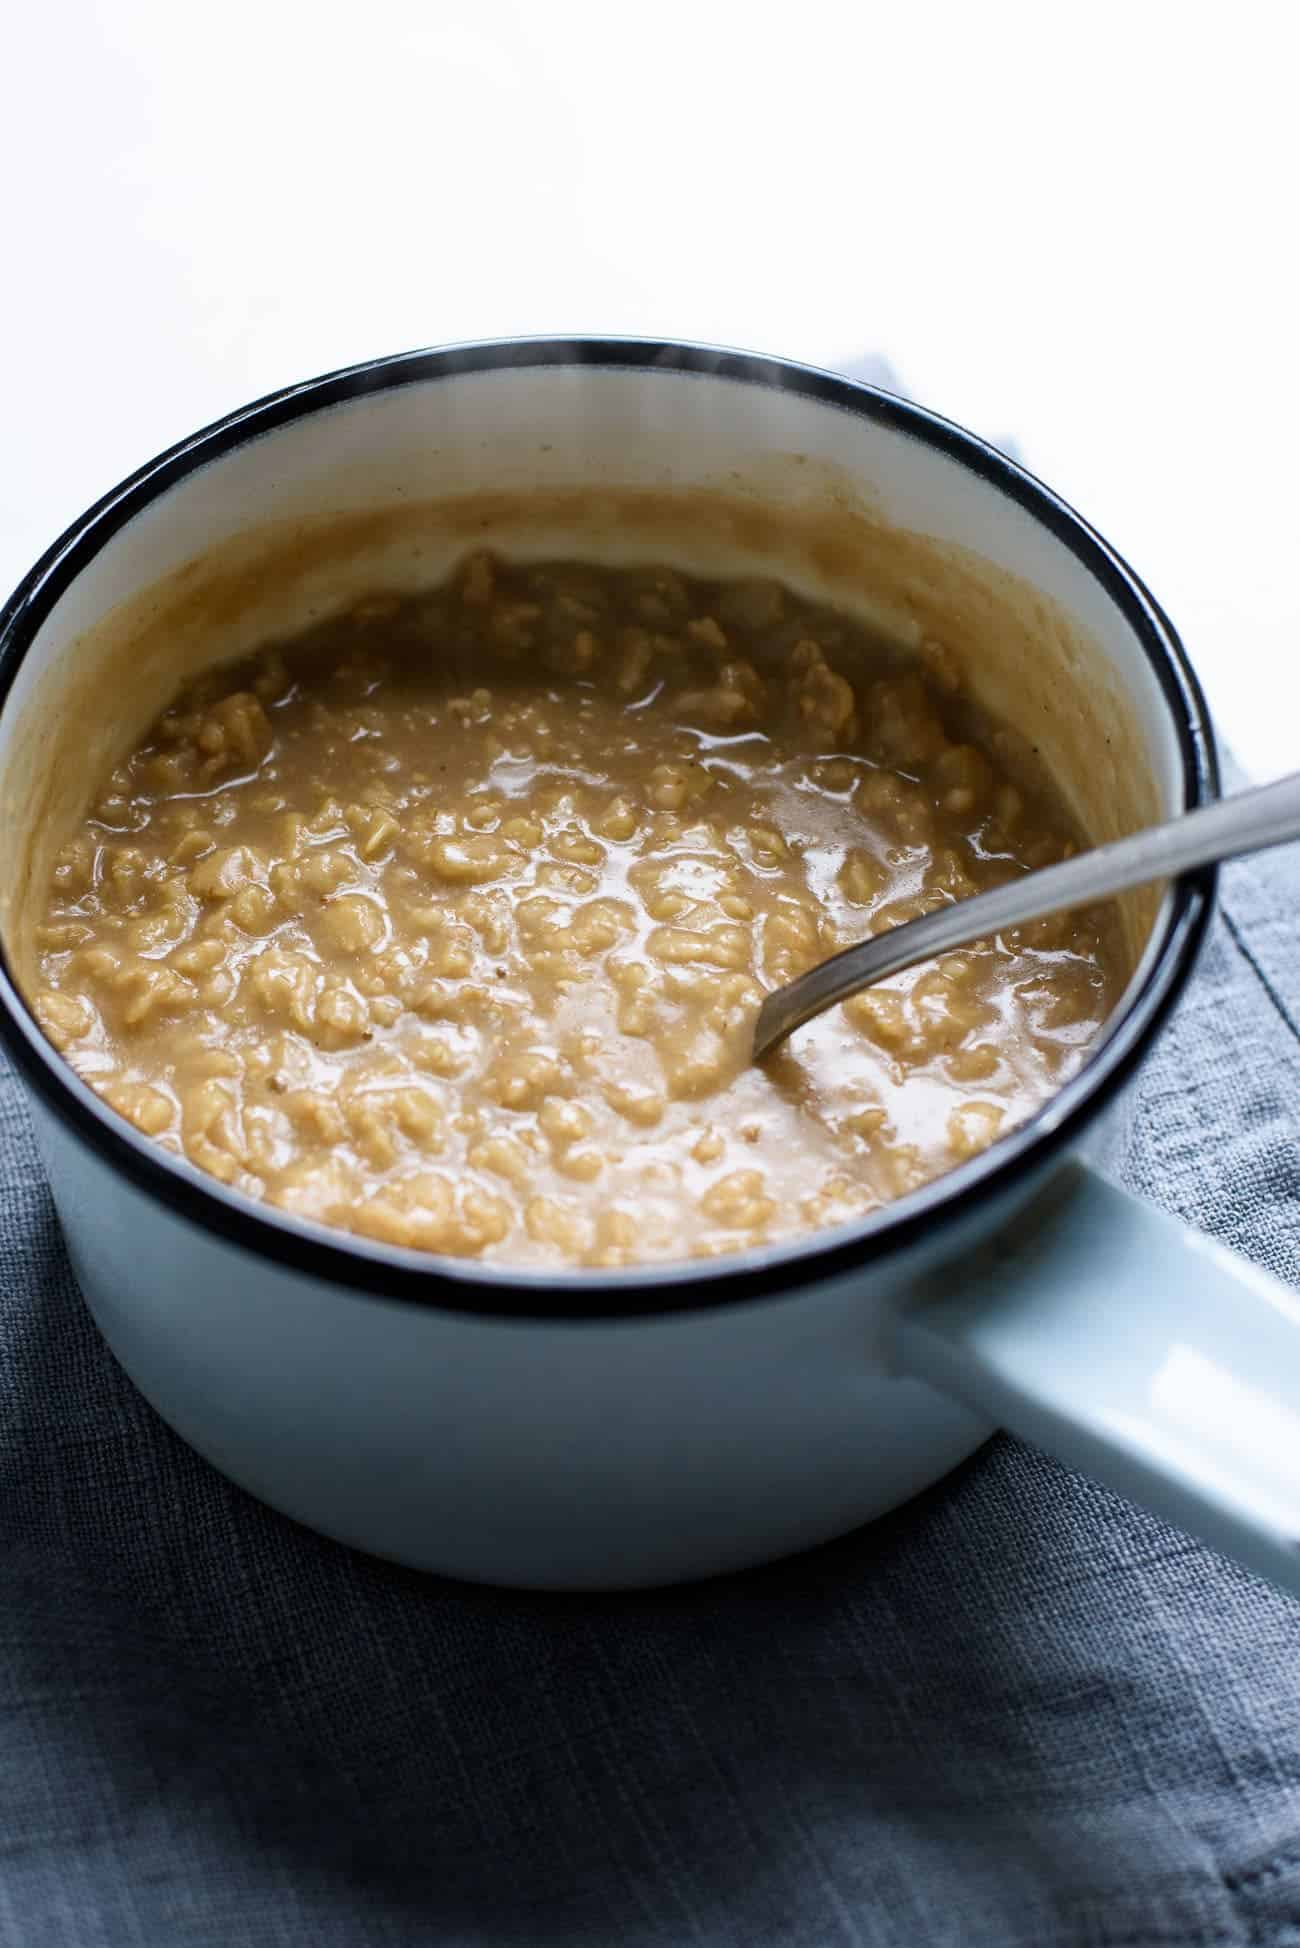 Creamy oatmeal cooked with coffee and coconut milk in a small pot